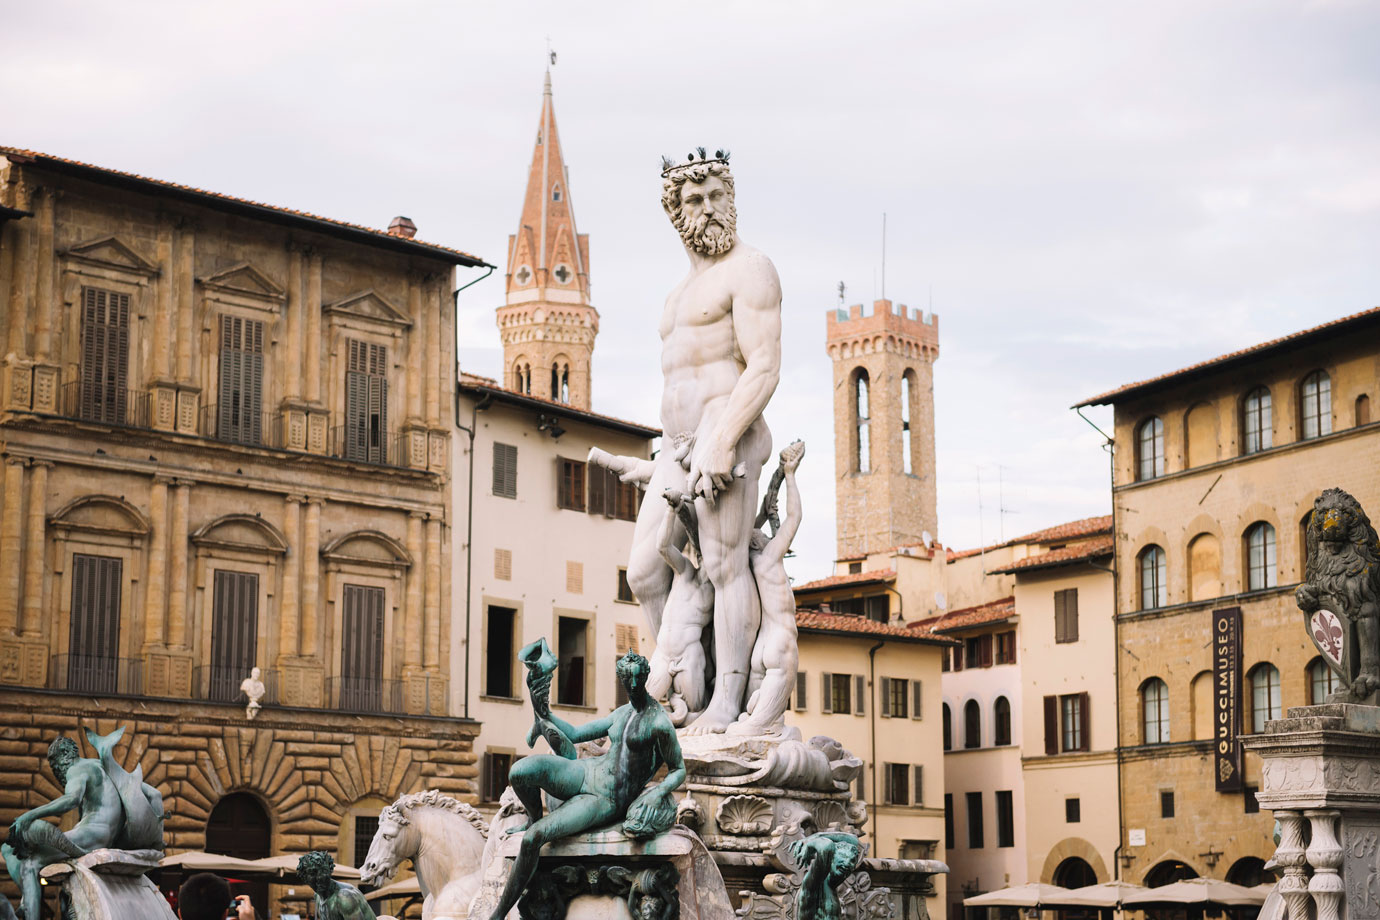 Florence Travel Guide: The Fountain of Neptune